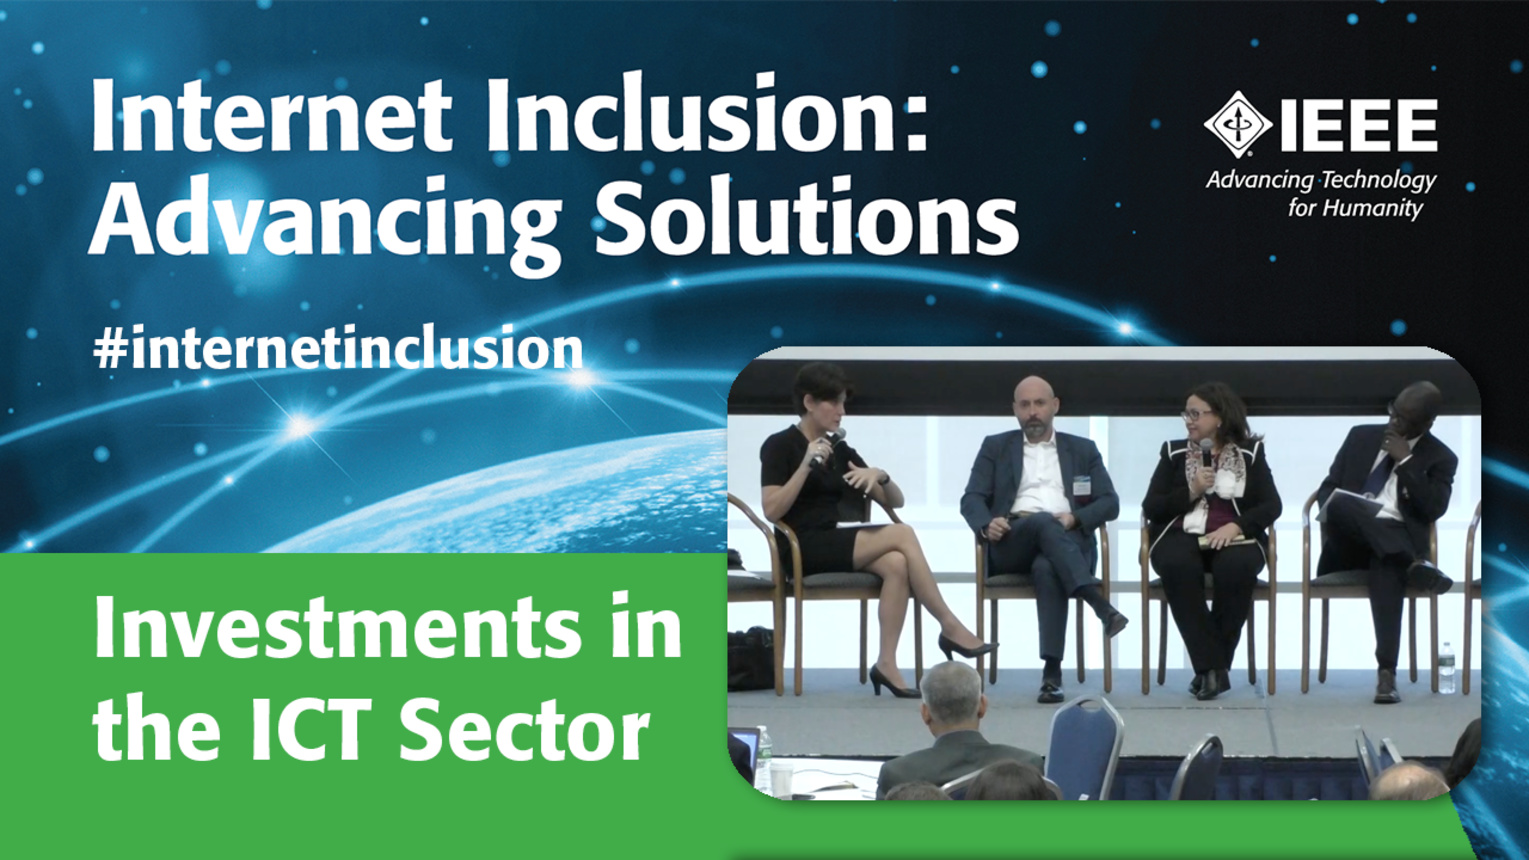 IEEE Internet Inclusion: Are Investments in the ICT Sector a Priority for Multilateral Development Banks?